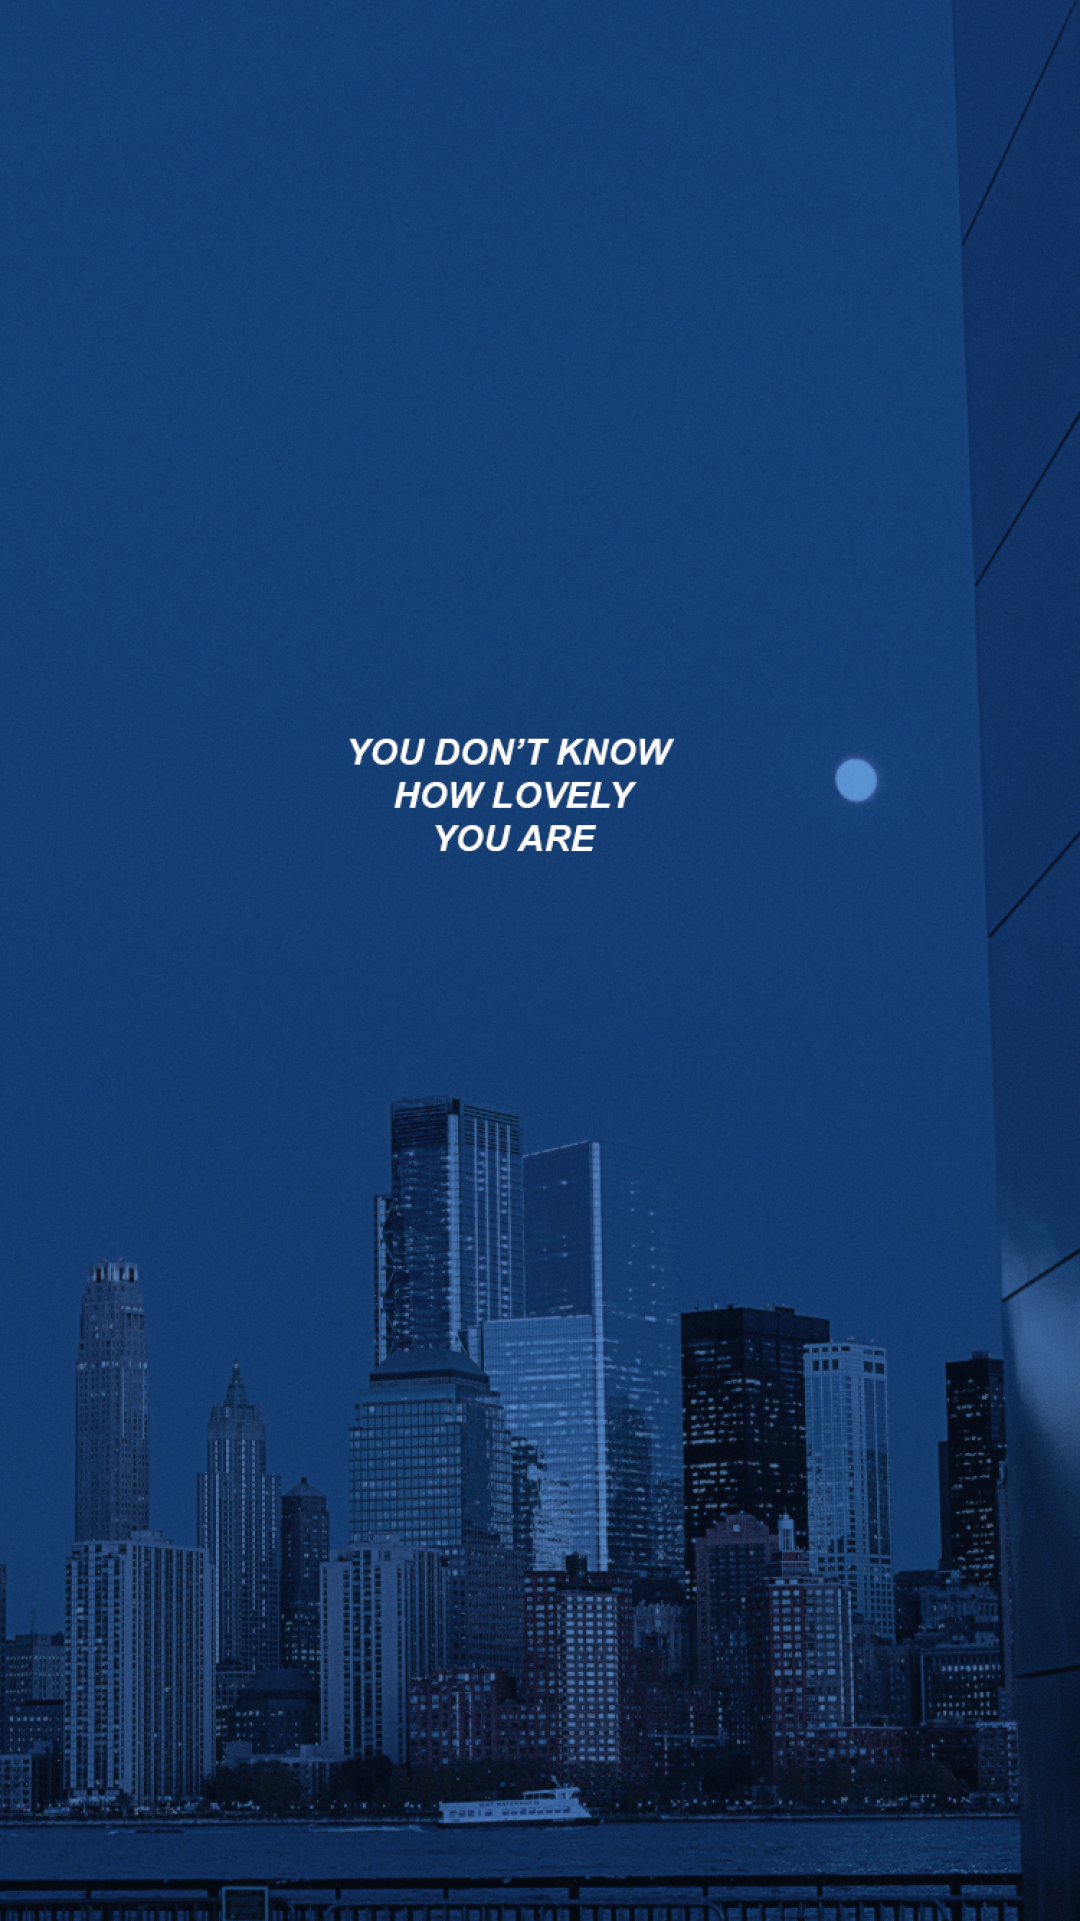 Aesthetic Blue City Wallpapers - Wallpaper Cave